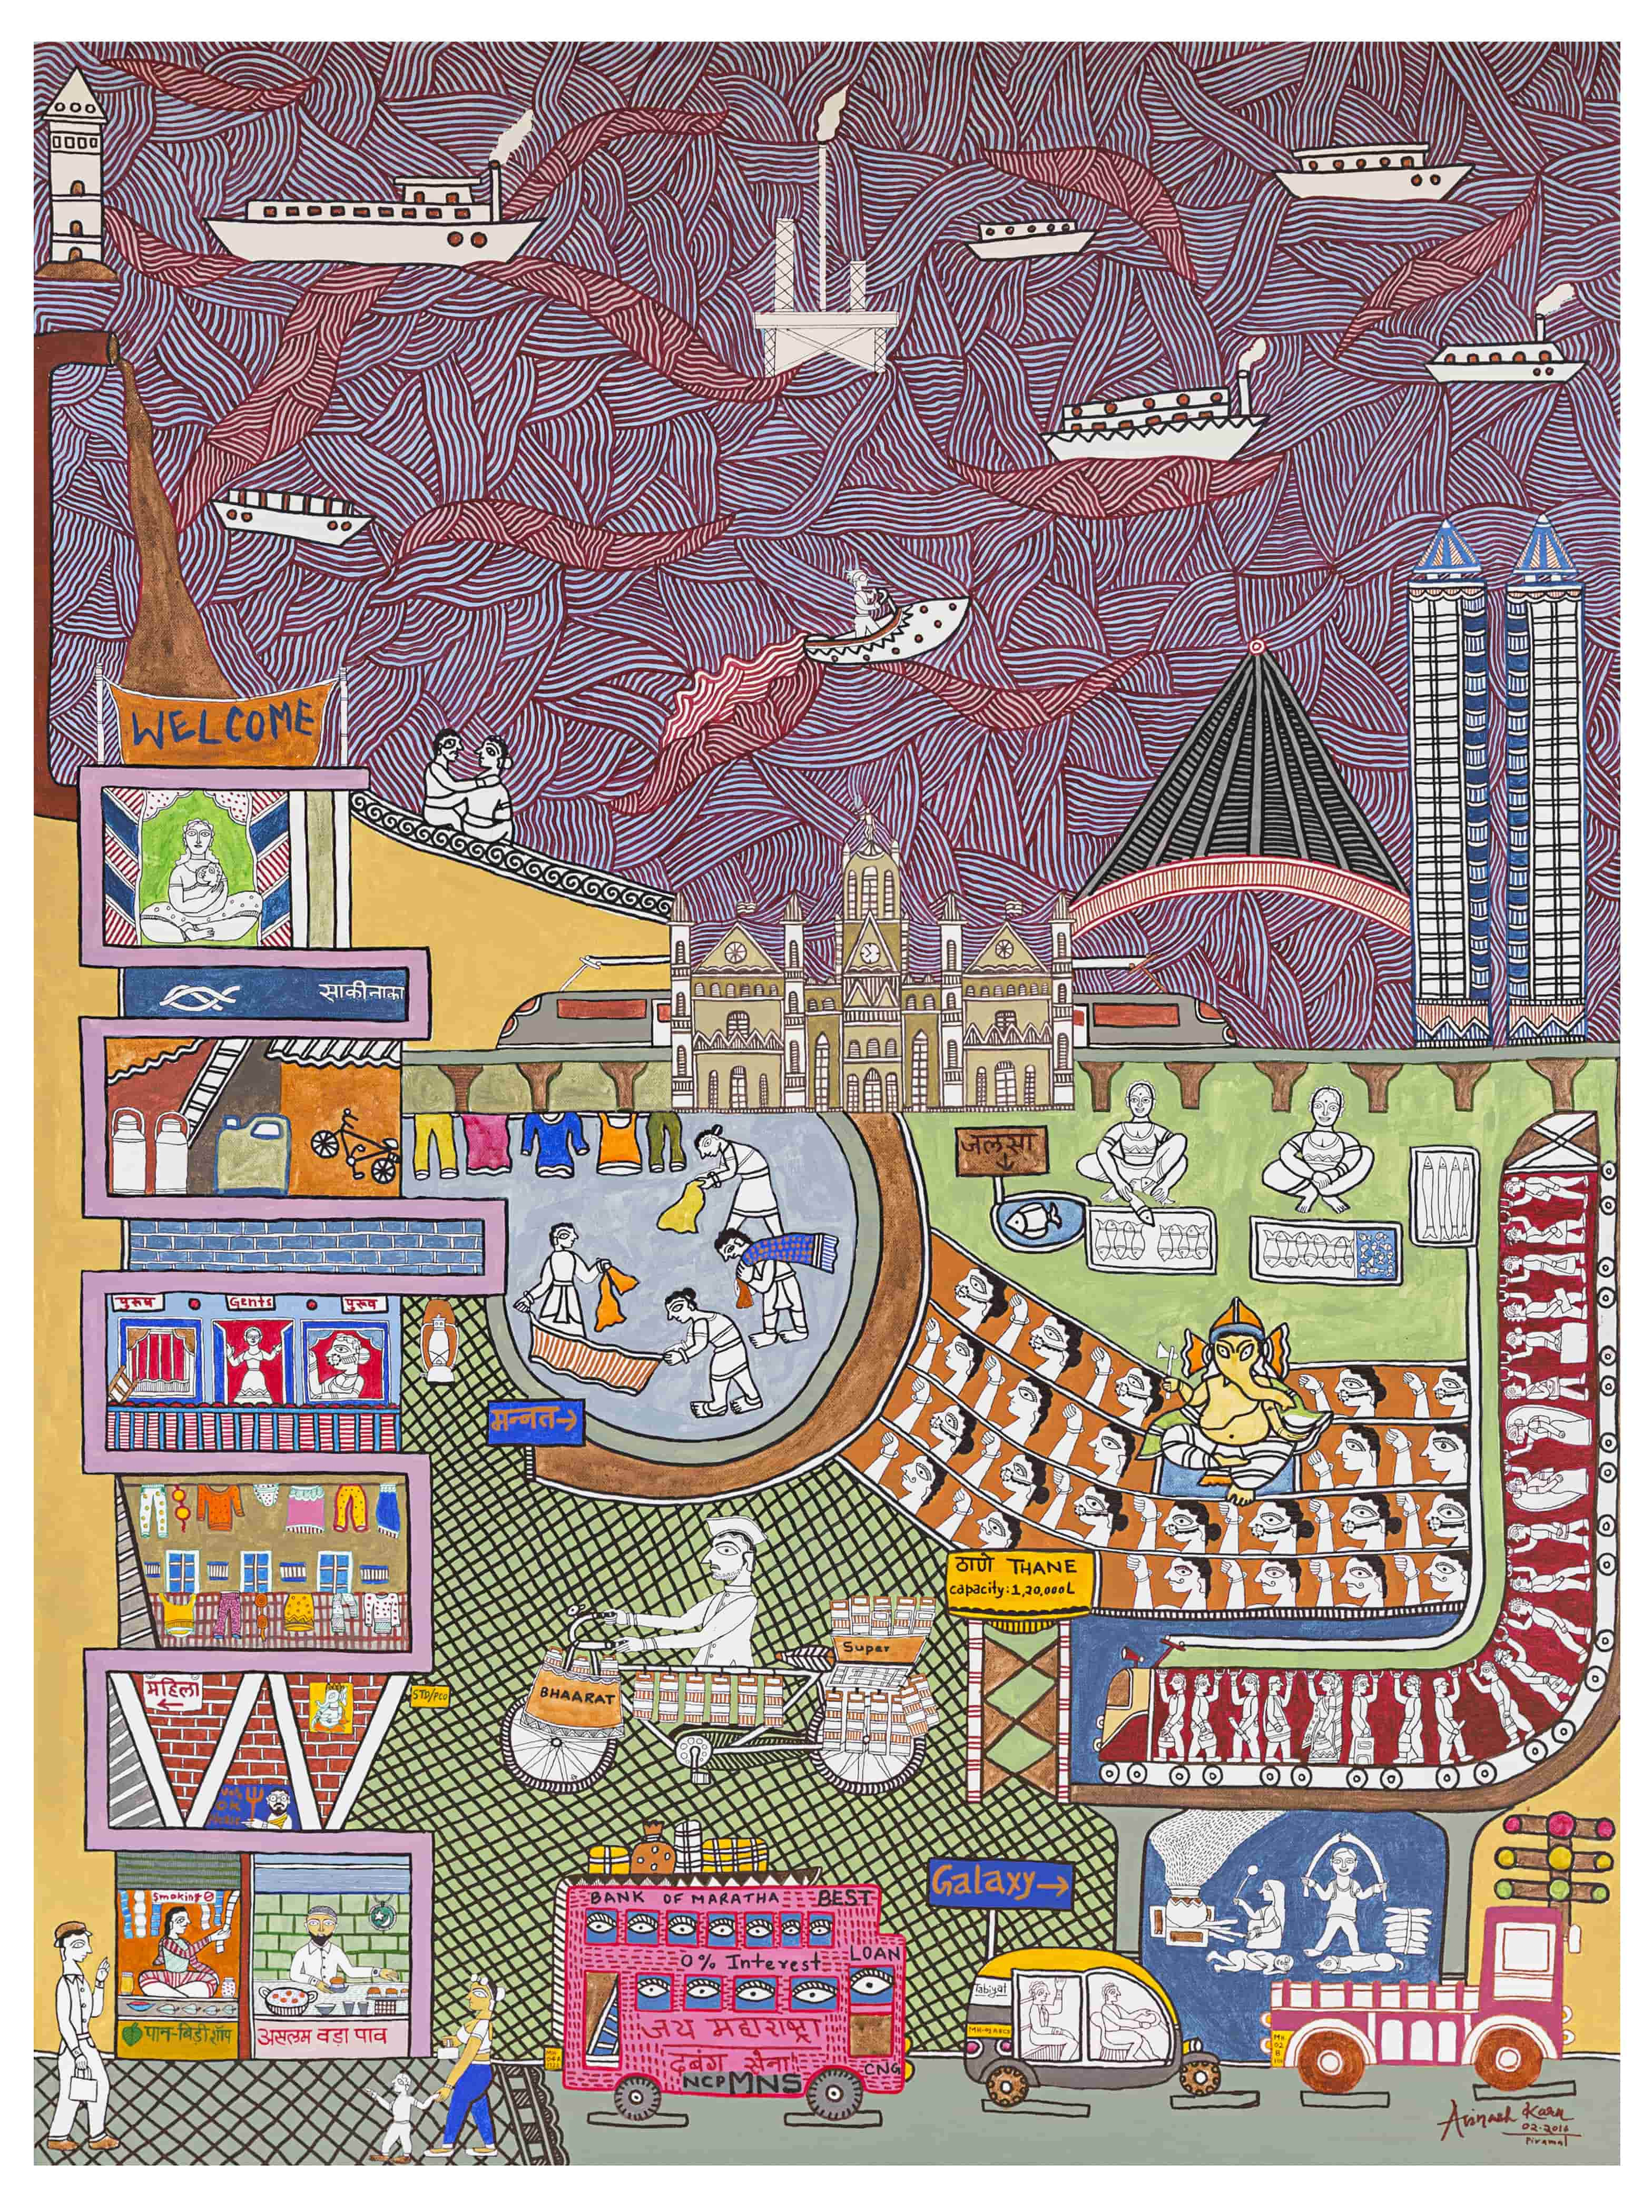 In 'An Ode to Mumbai', Karn has replicated his experience of the city. The upper half of the painting is dedicated to the Arabian Sea and the rest of the canvas shows the city – a couple on a date on Marine Drive, a brothel within a slum, the iconic Church Gate, a pink (not the official red) BEST bus with commuter eyes staring out of every bus window, dabbawalas and, of course, a vada pav stall.